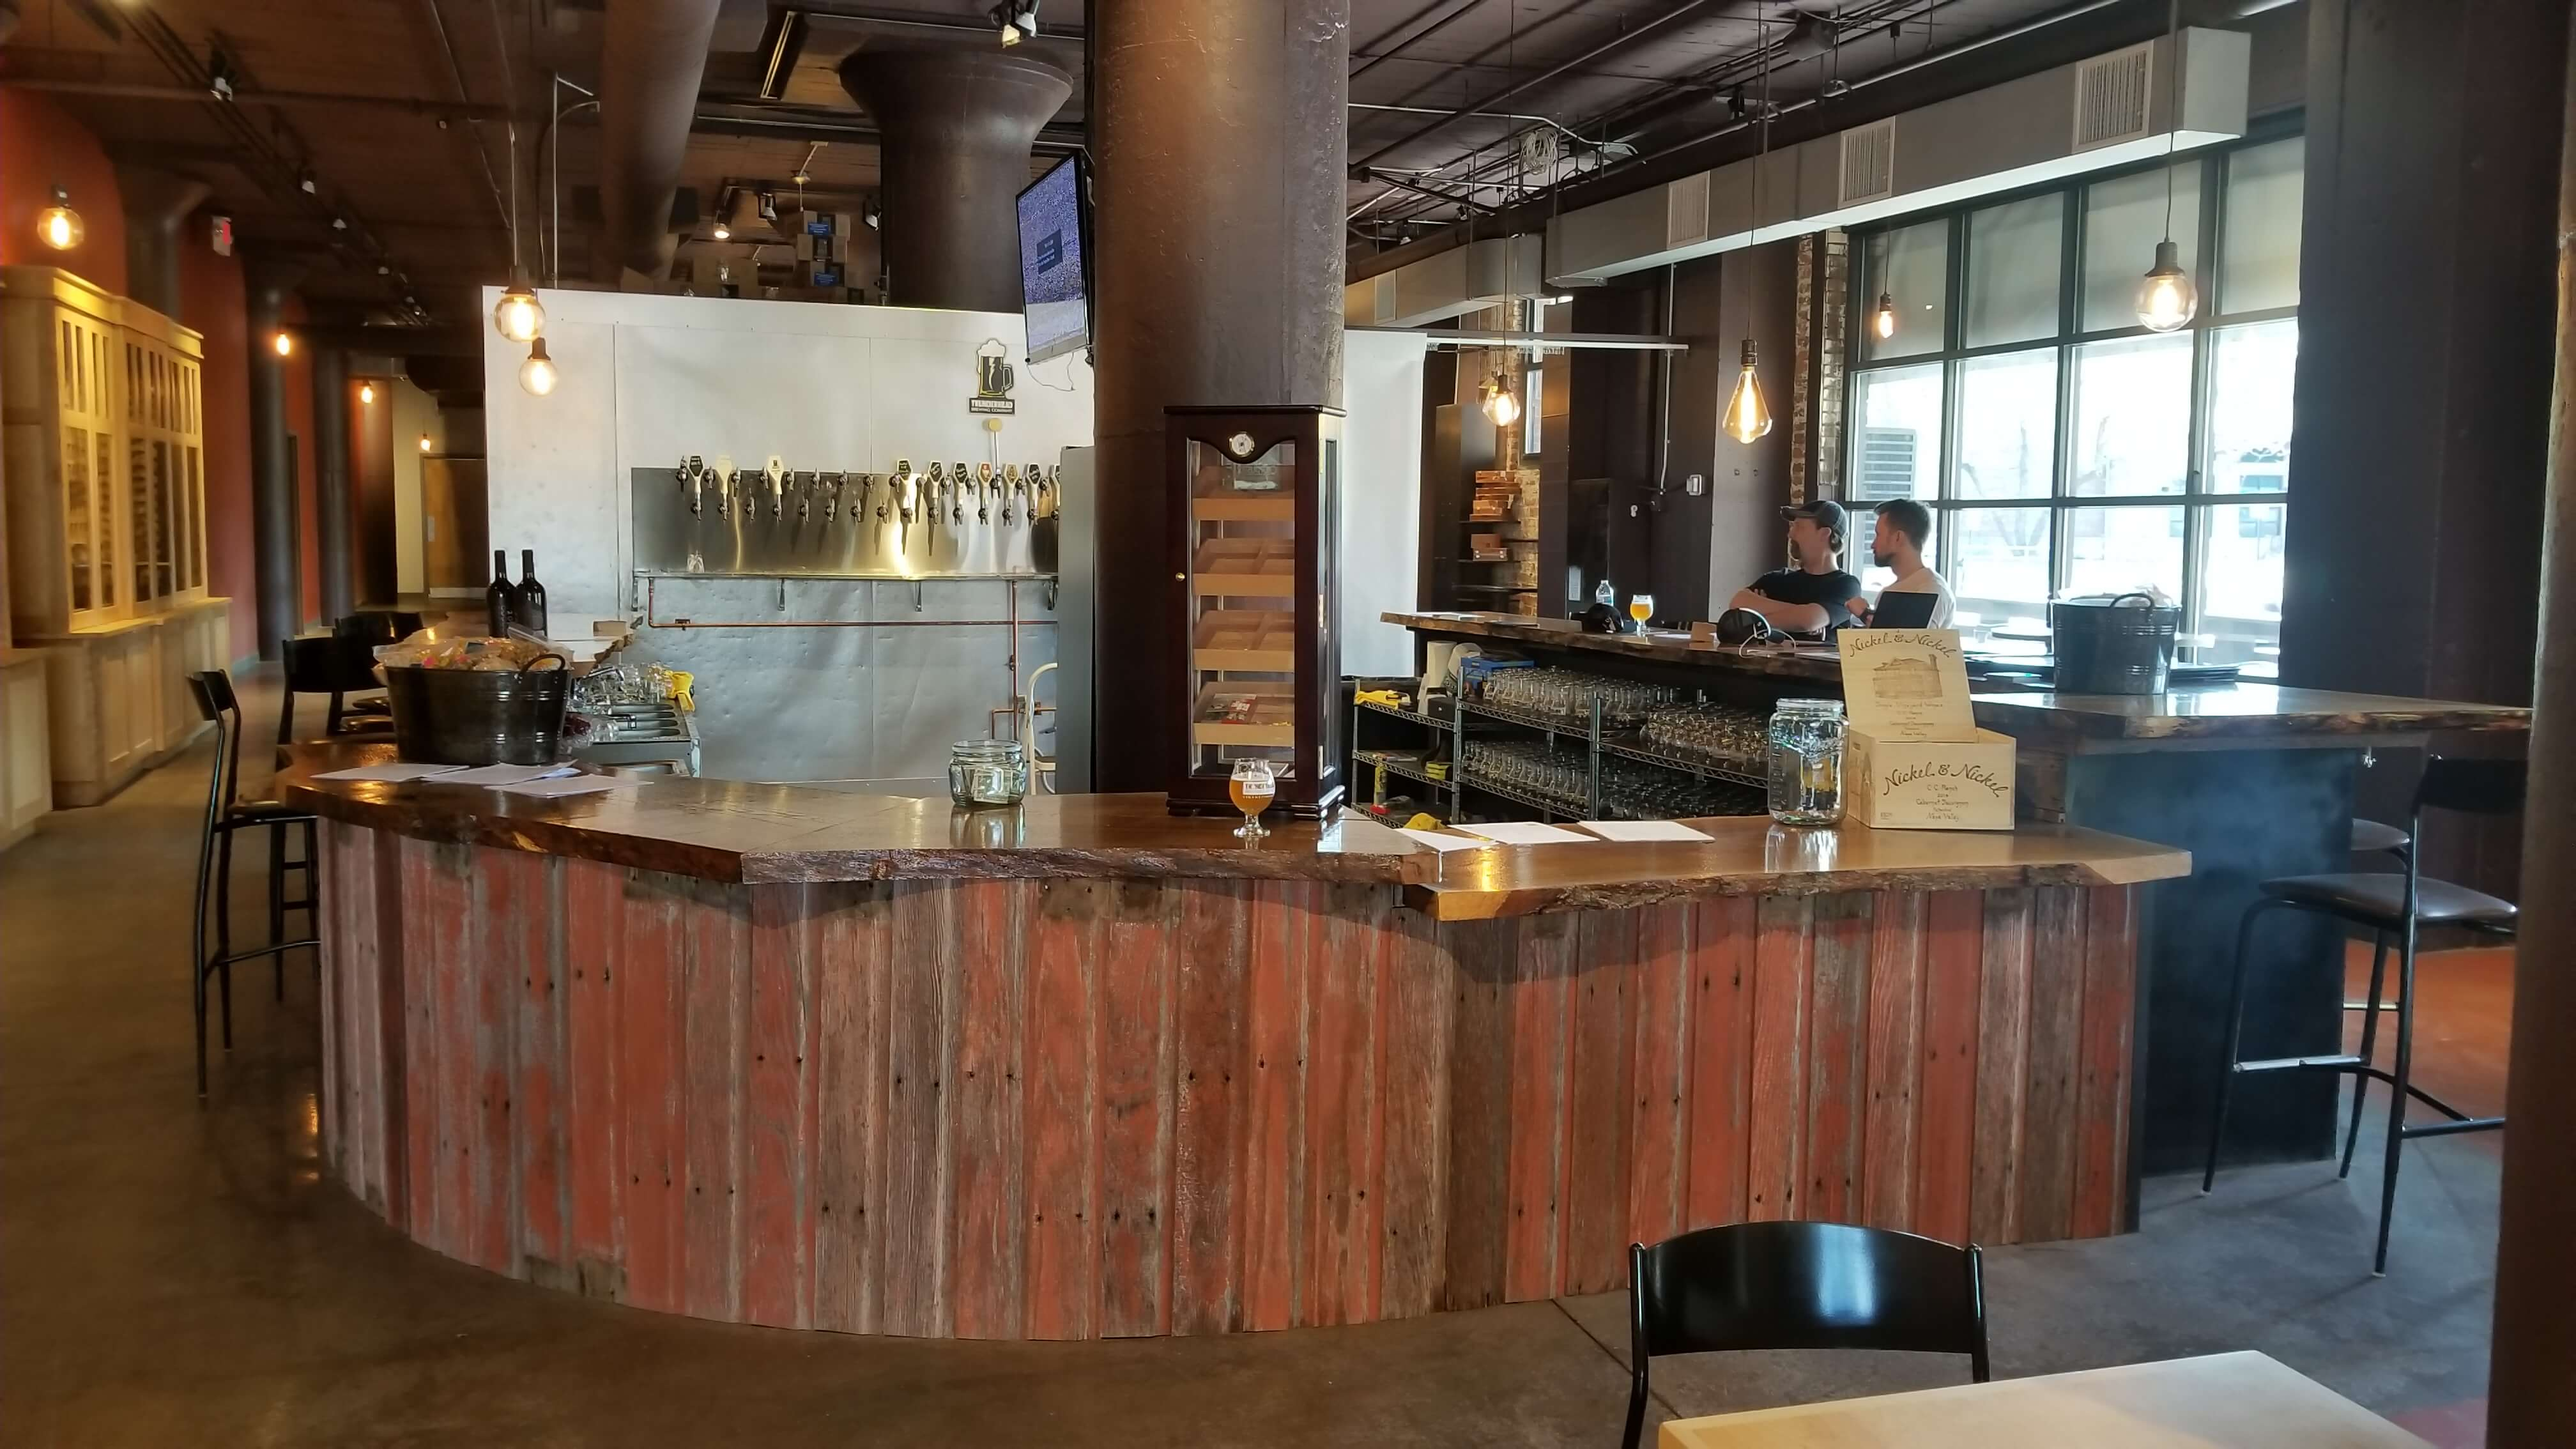 Live Edge Wood Bar with Reclaimed Wood Panels and a Metal Beer Tap Wall Behind It